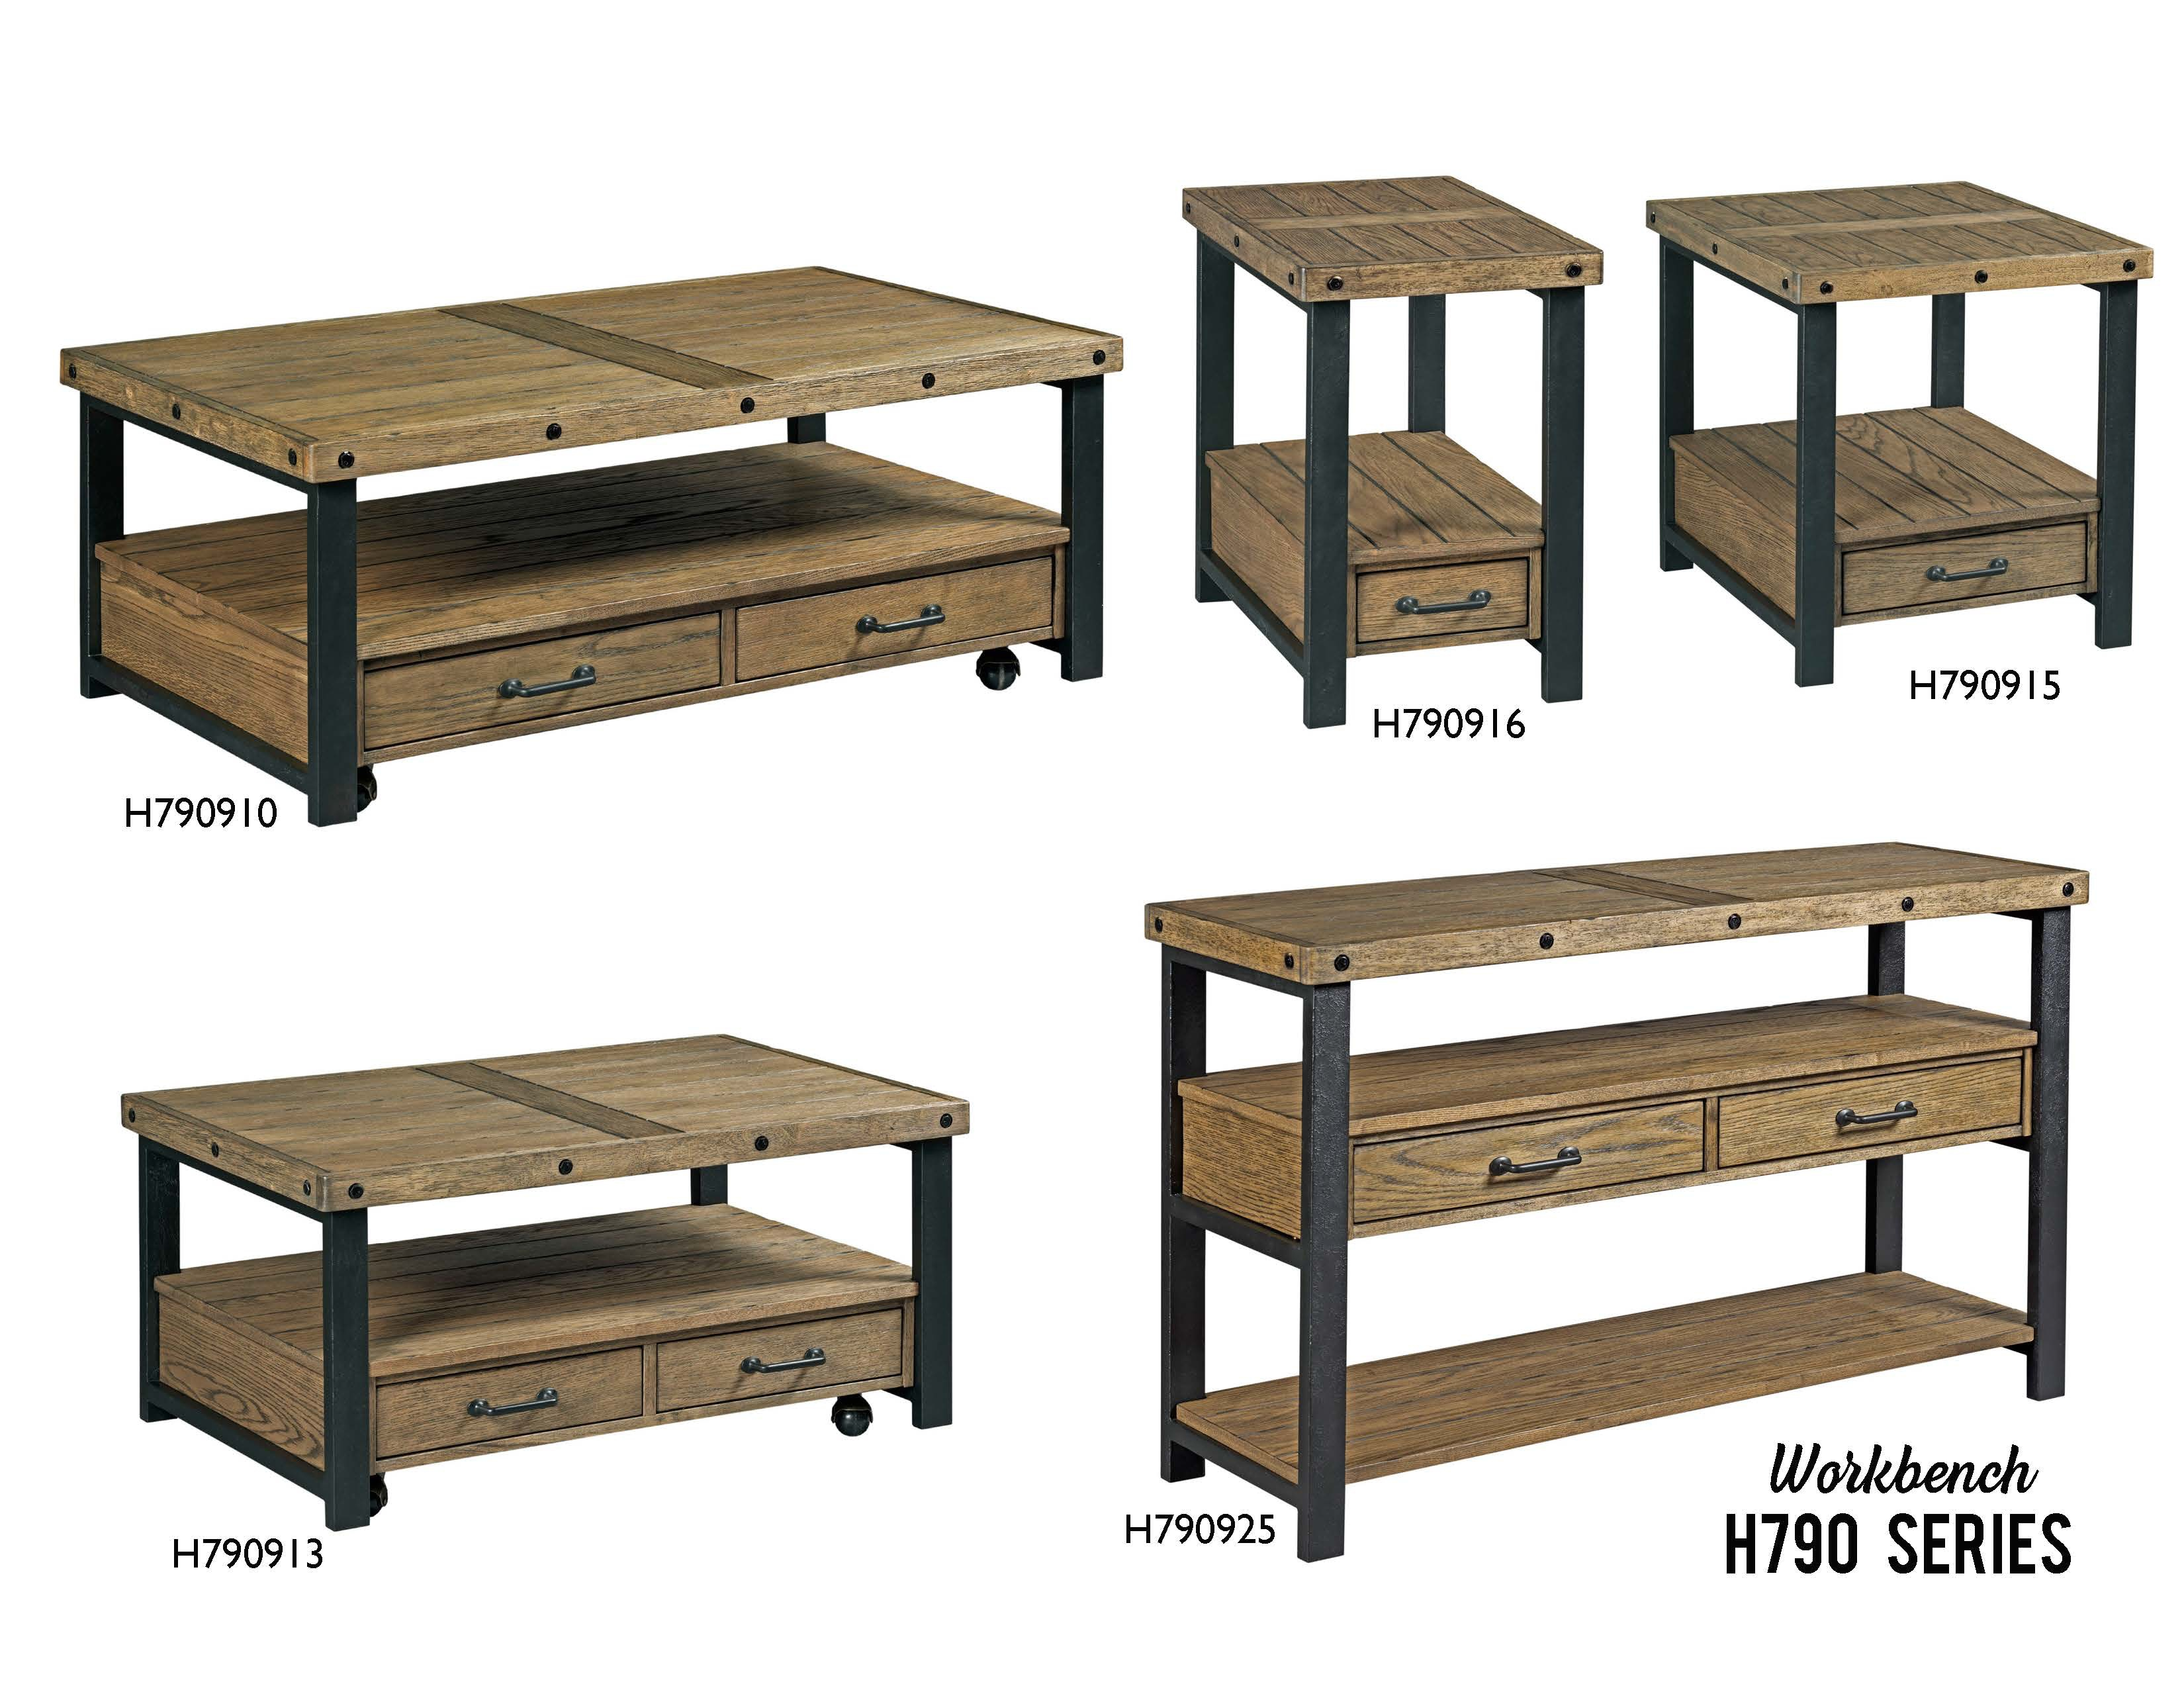 Merveilleux England Living Room Workbench H790   Fiore Furniture Company   Altoona, PA